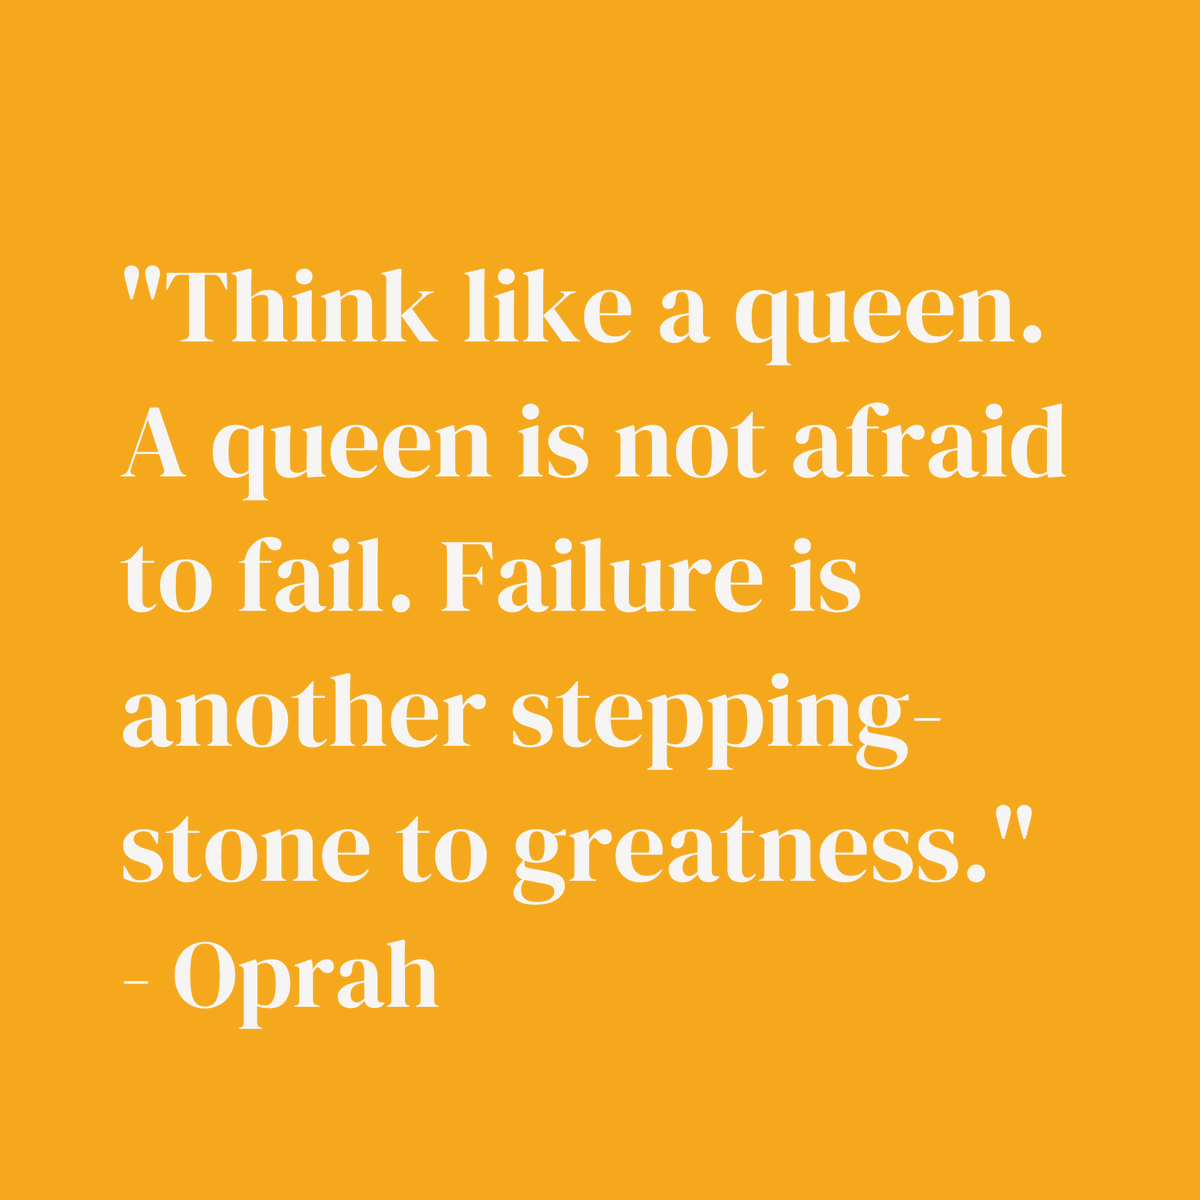 Think like a queen✨ Happy Women's Day from our babes to yours! Inspiring quotes from strong women 👉 on the blog Read The Blog:  https://t.co/MscB45p9fI https://t.co/piGDjg8Nyg